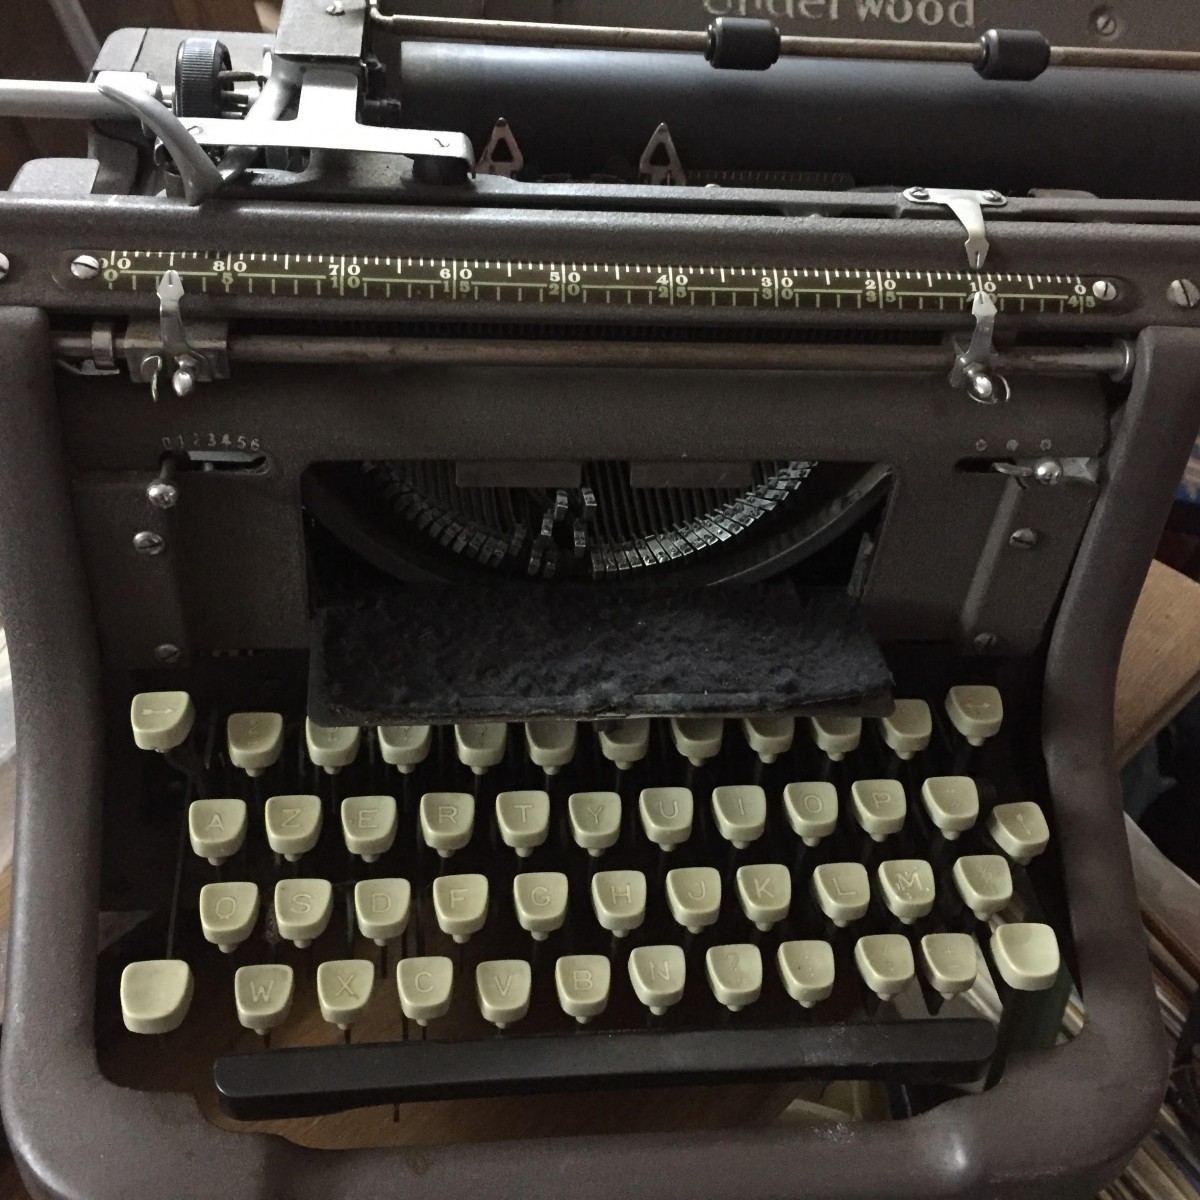 Machine crire underwood 1930 luckyfind - Machine a ecrire underwood ...